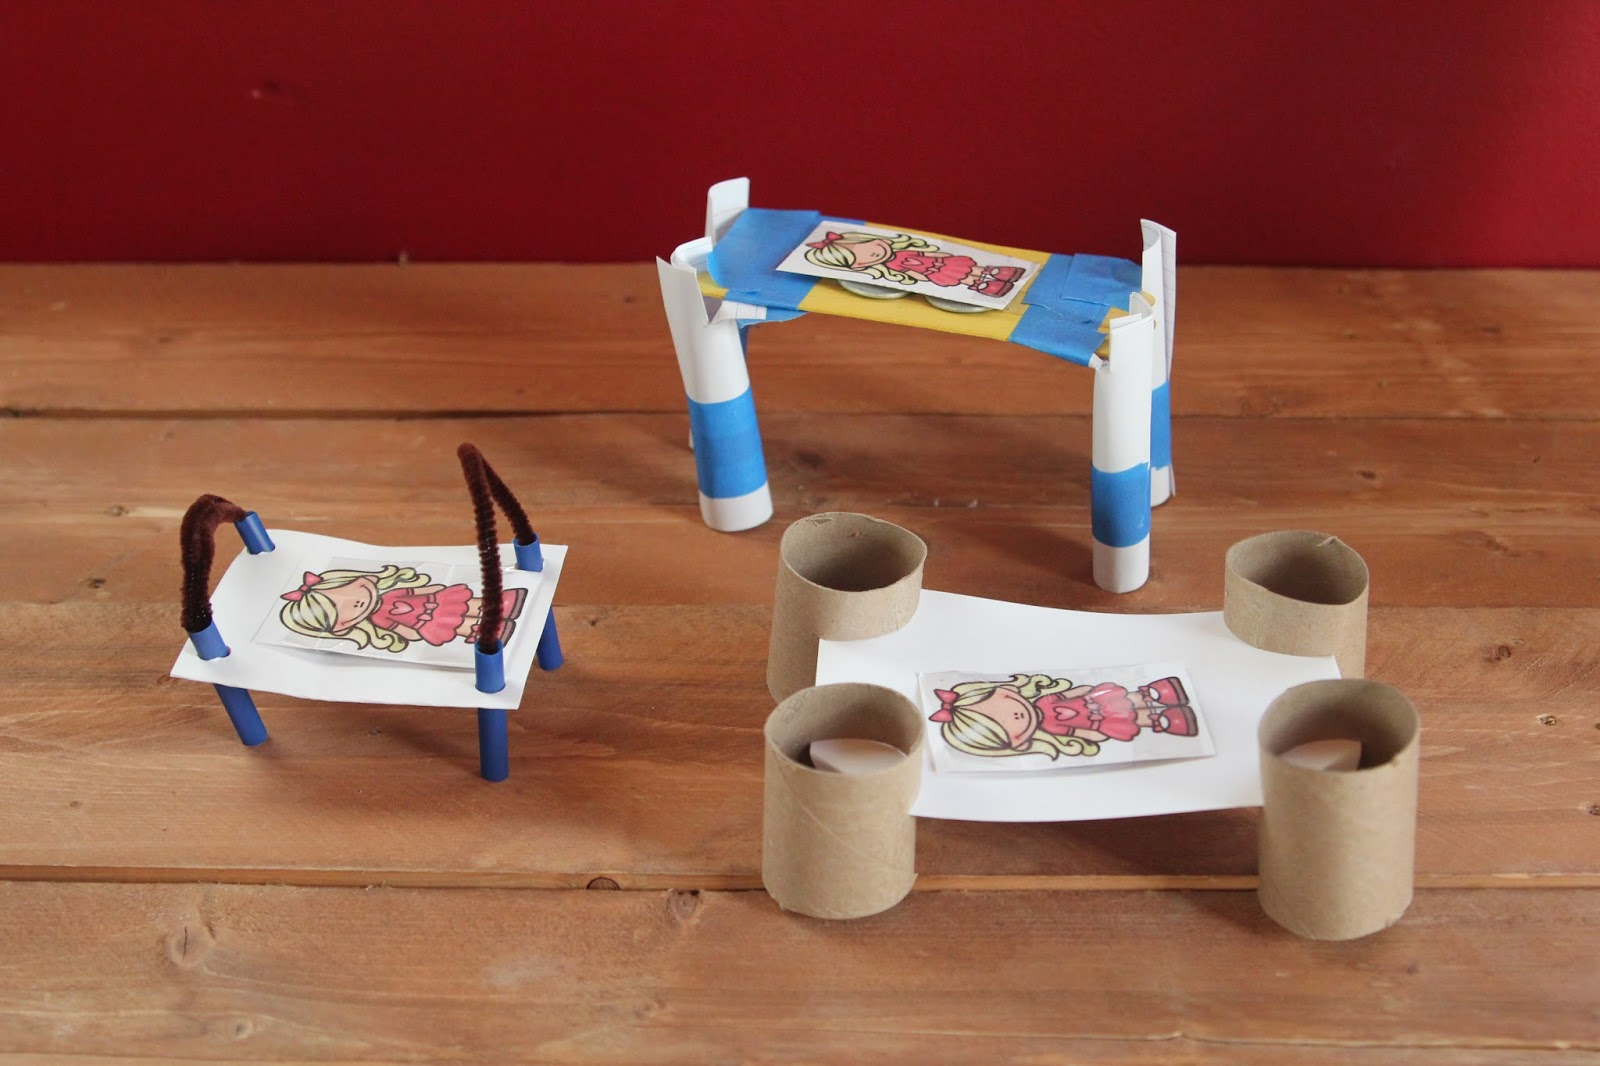 Uncategorized Goldilocks Bed stem tales a new bed for golidlocks momgineer after you have tested out the beds its time to introduce bear family challenge mama papa and baby who is same size as goldilock